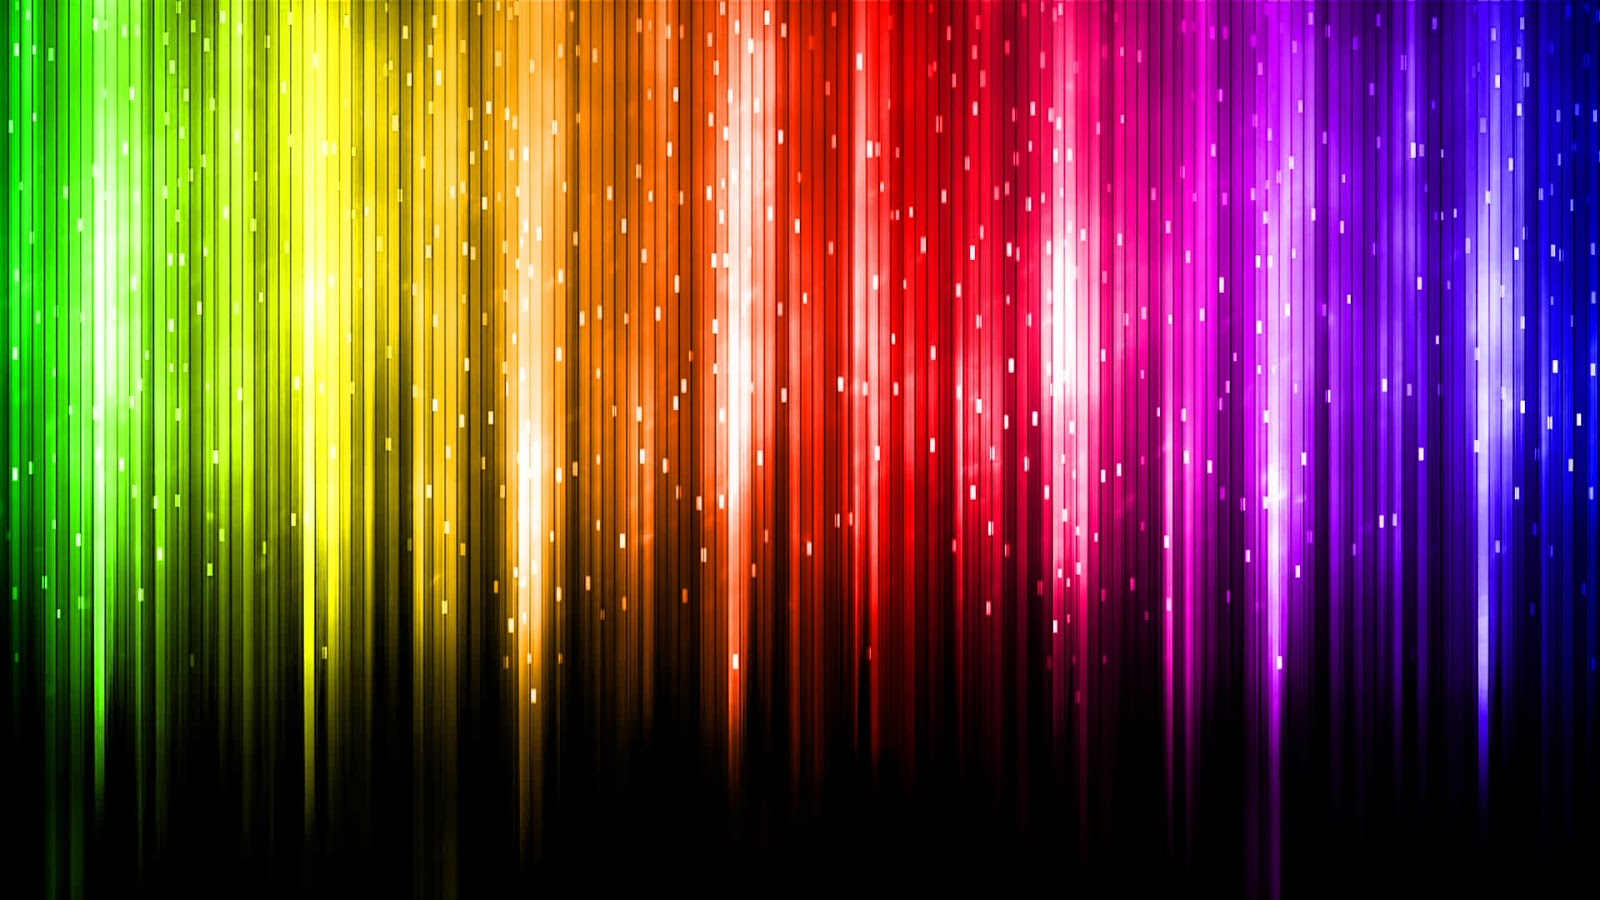 abstract colorful wallpaper 4 17 - photo #18